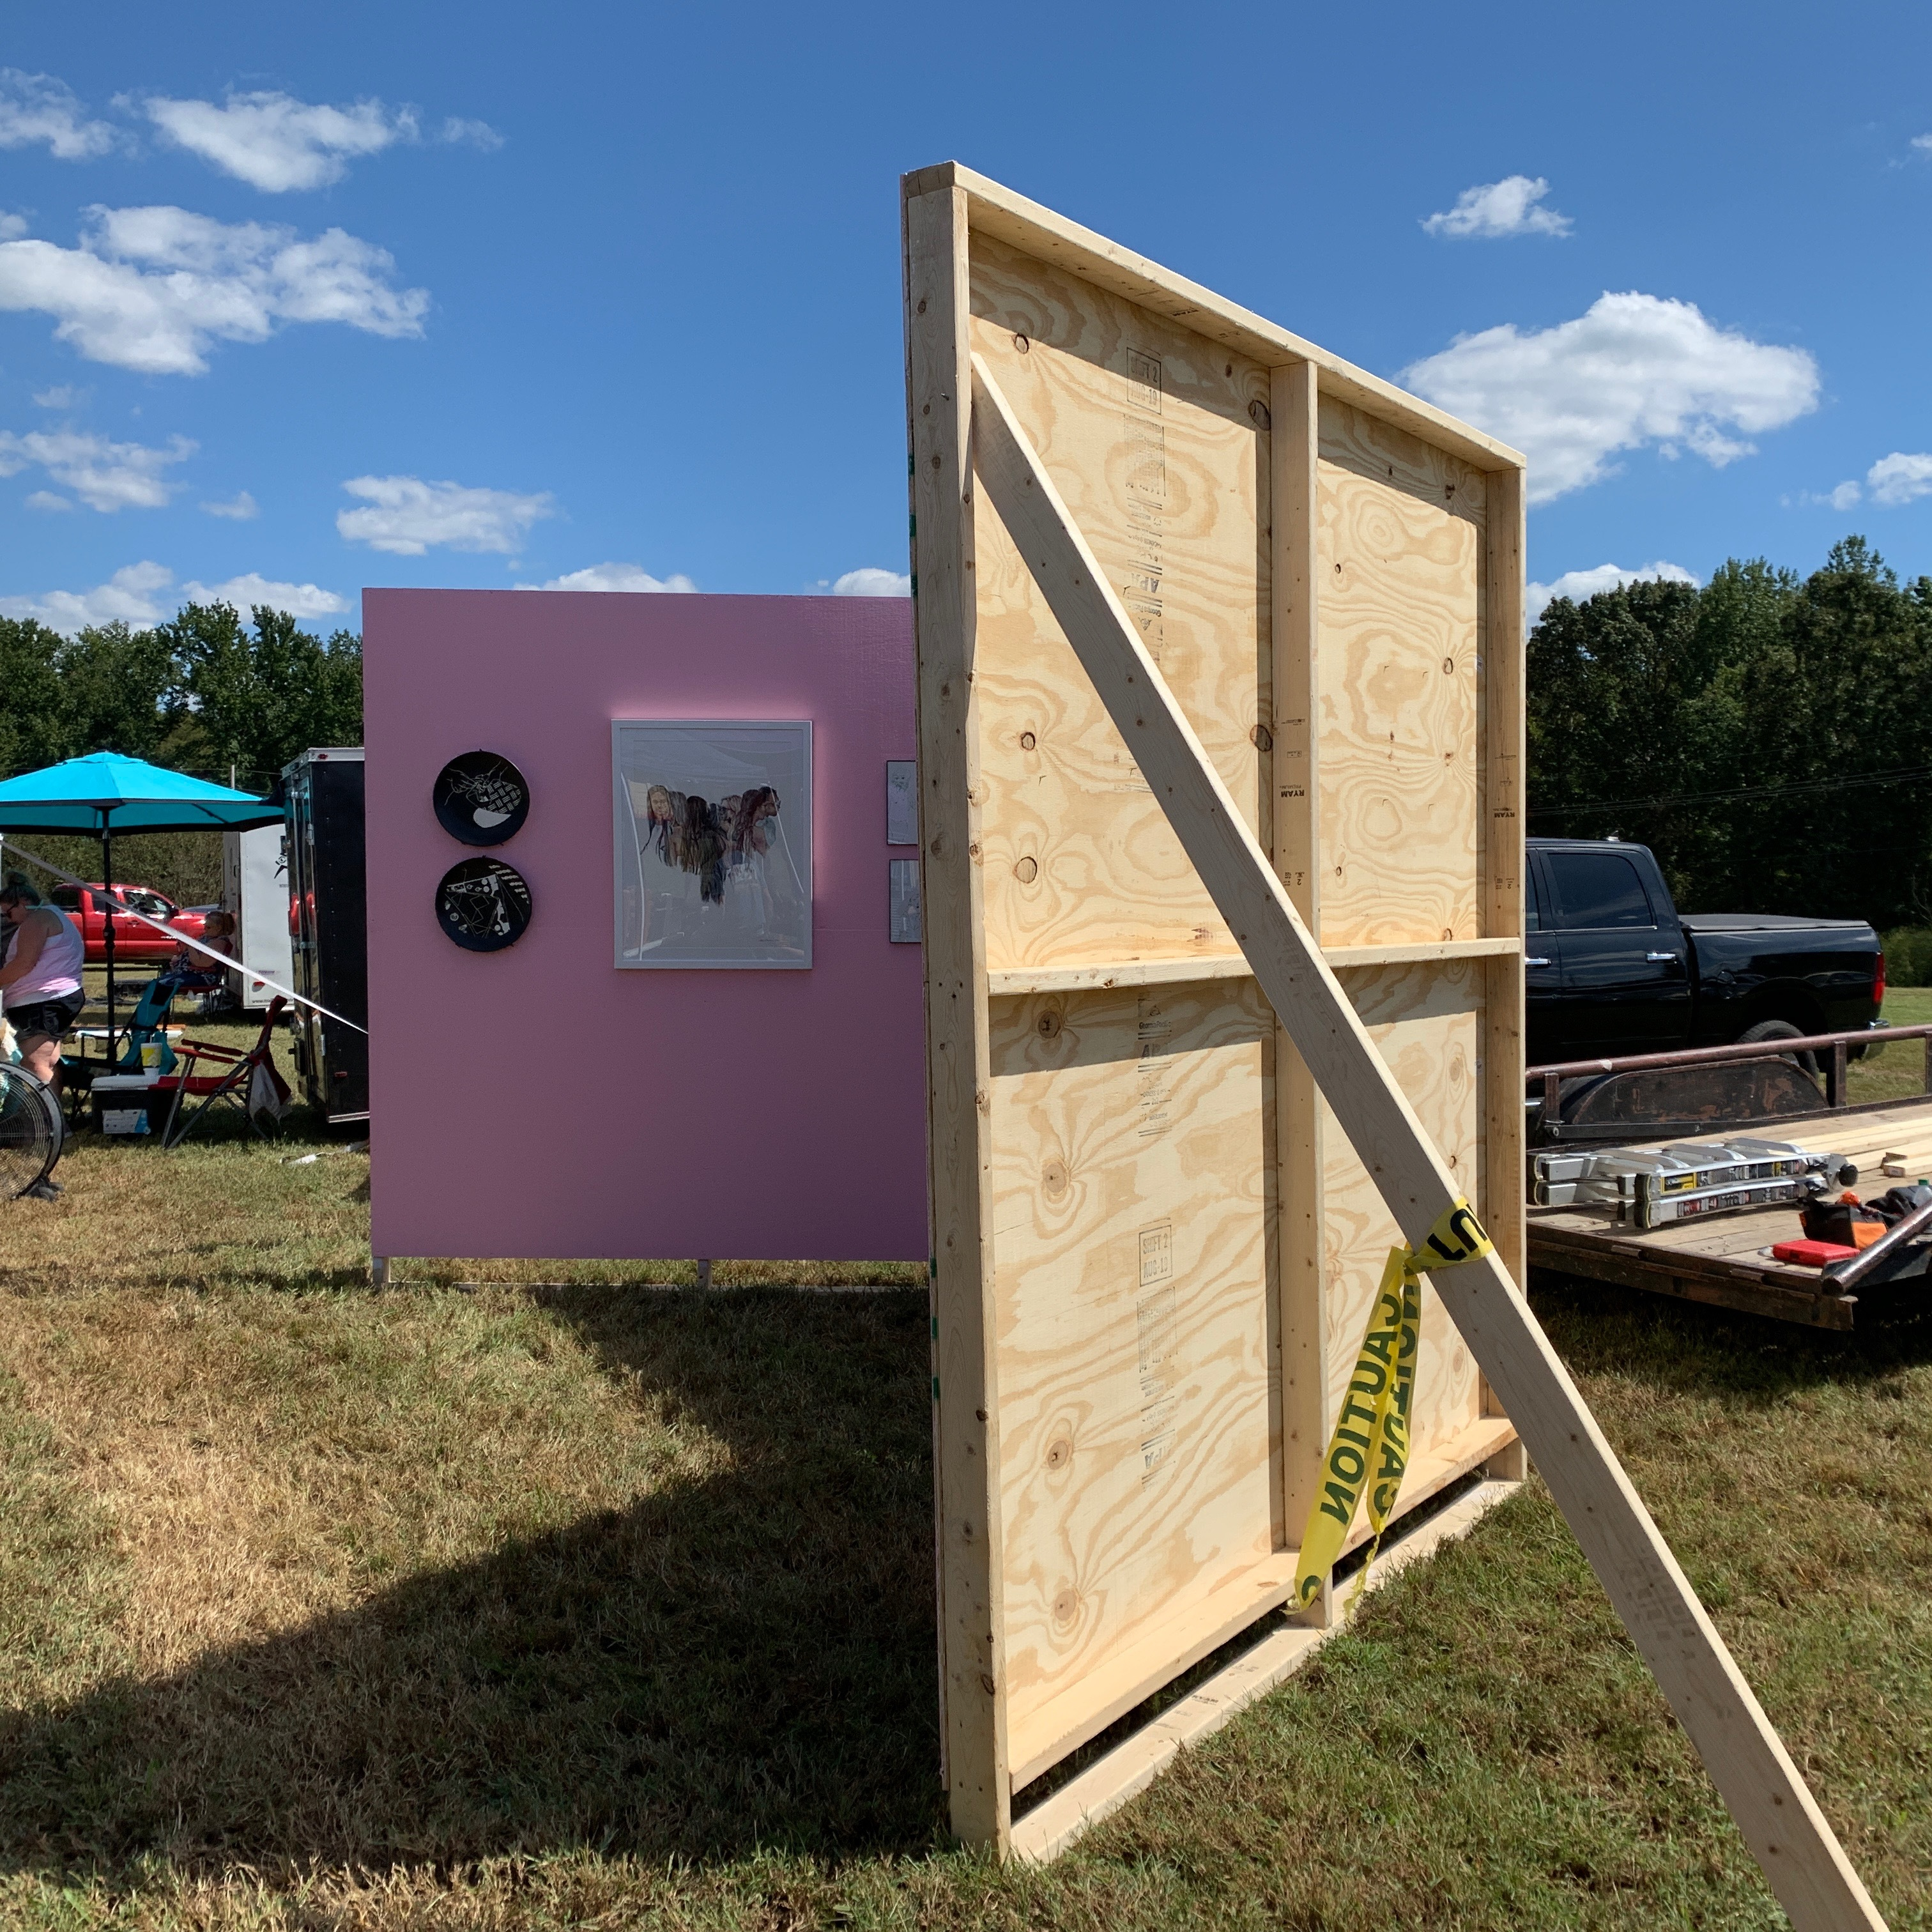 Nutgrass art space (Southaven, MS)